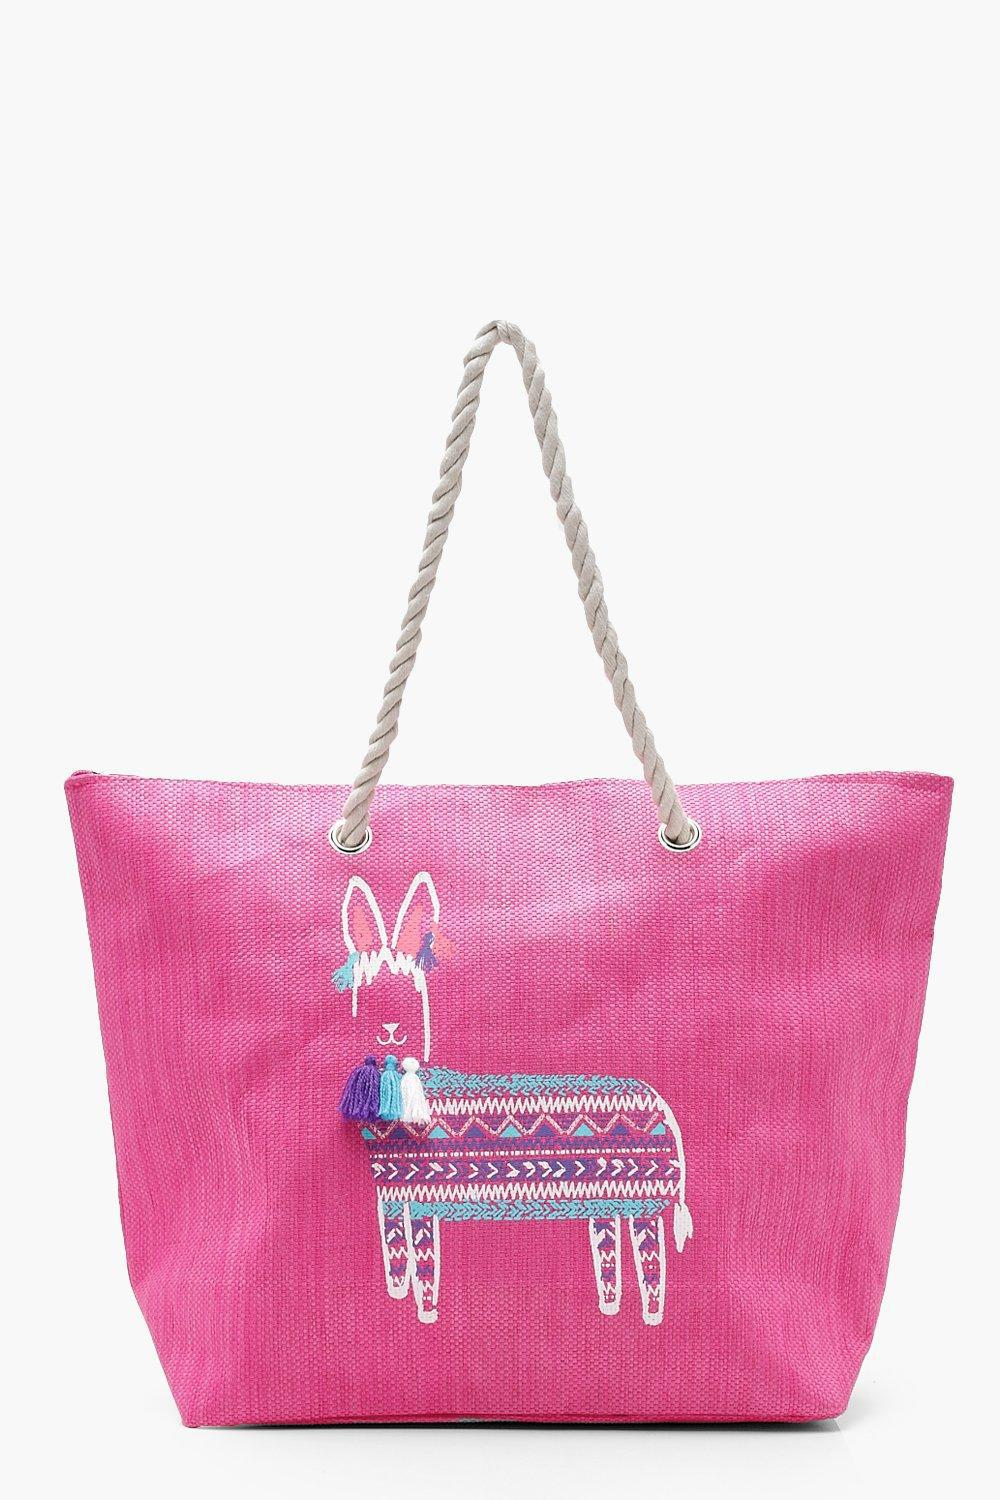 Boohoo Women S Pink Lily Tel Animal Rope Handle Beach Bag